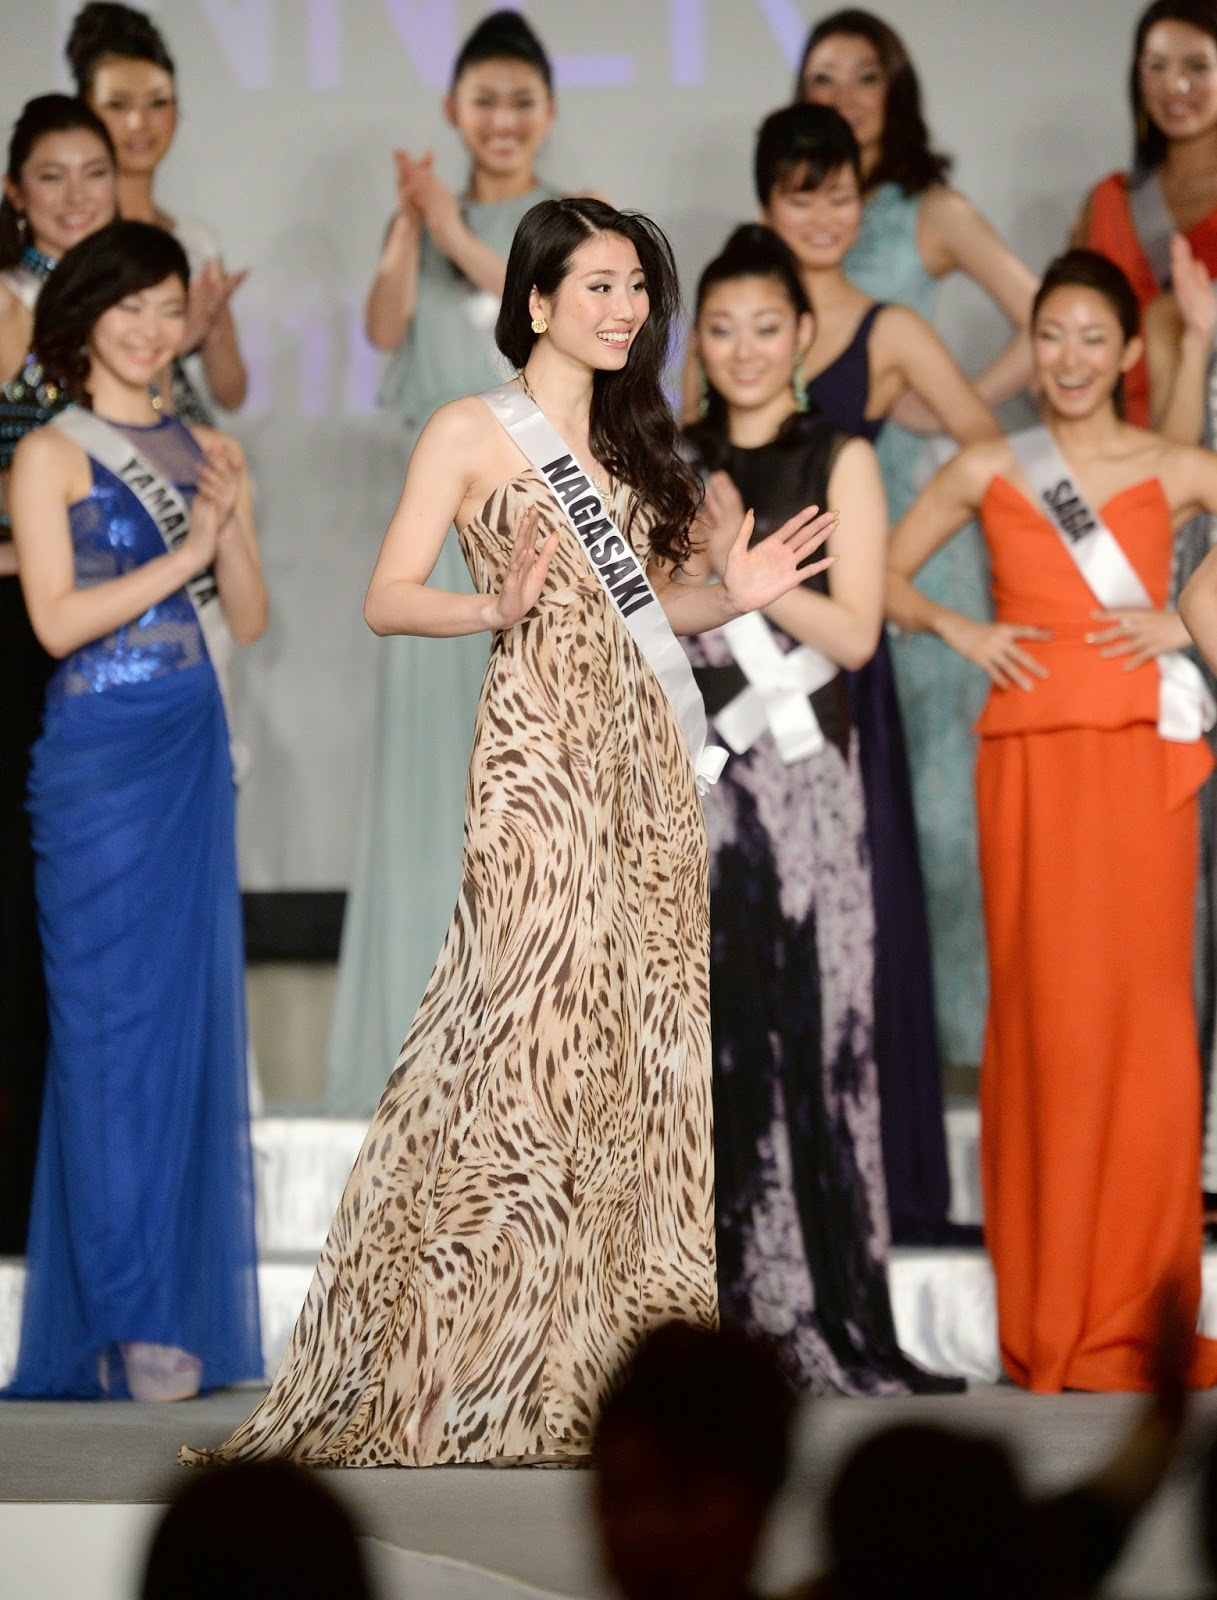 Beauty, Beauty Pageant, College Girl, Crowned, Entertainment, Japan, Japan Beauty Pageant, Keiko Tsuji, Miss Universe 2014, Tokyo, Winner of Miss Japan,